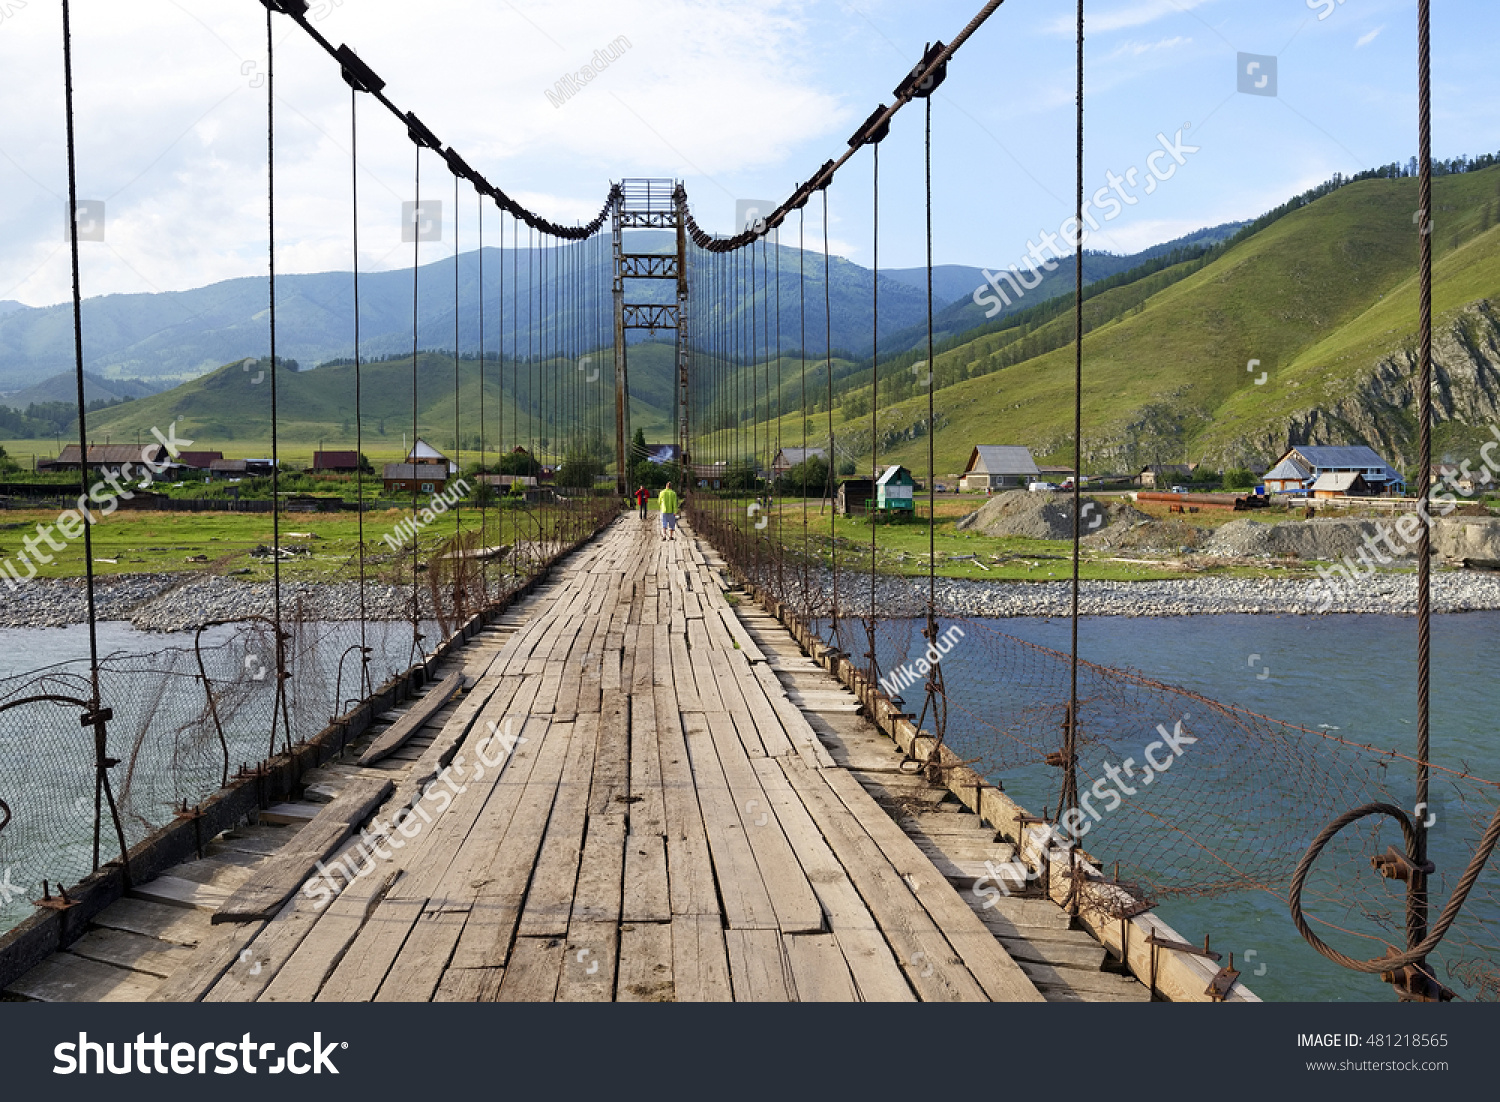 In Altai, Sibmost will build a bridge and reconstruct the Chui road 11